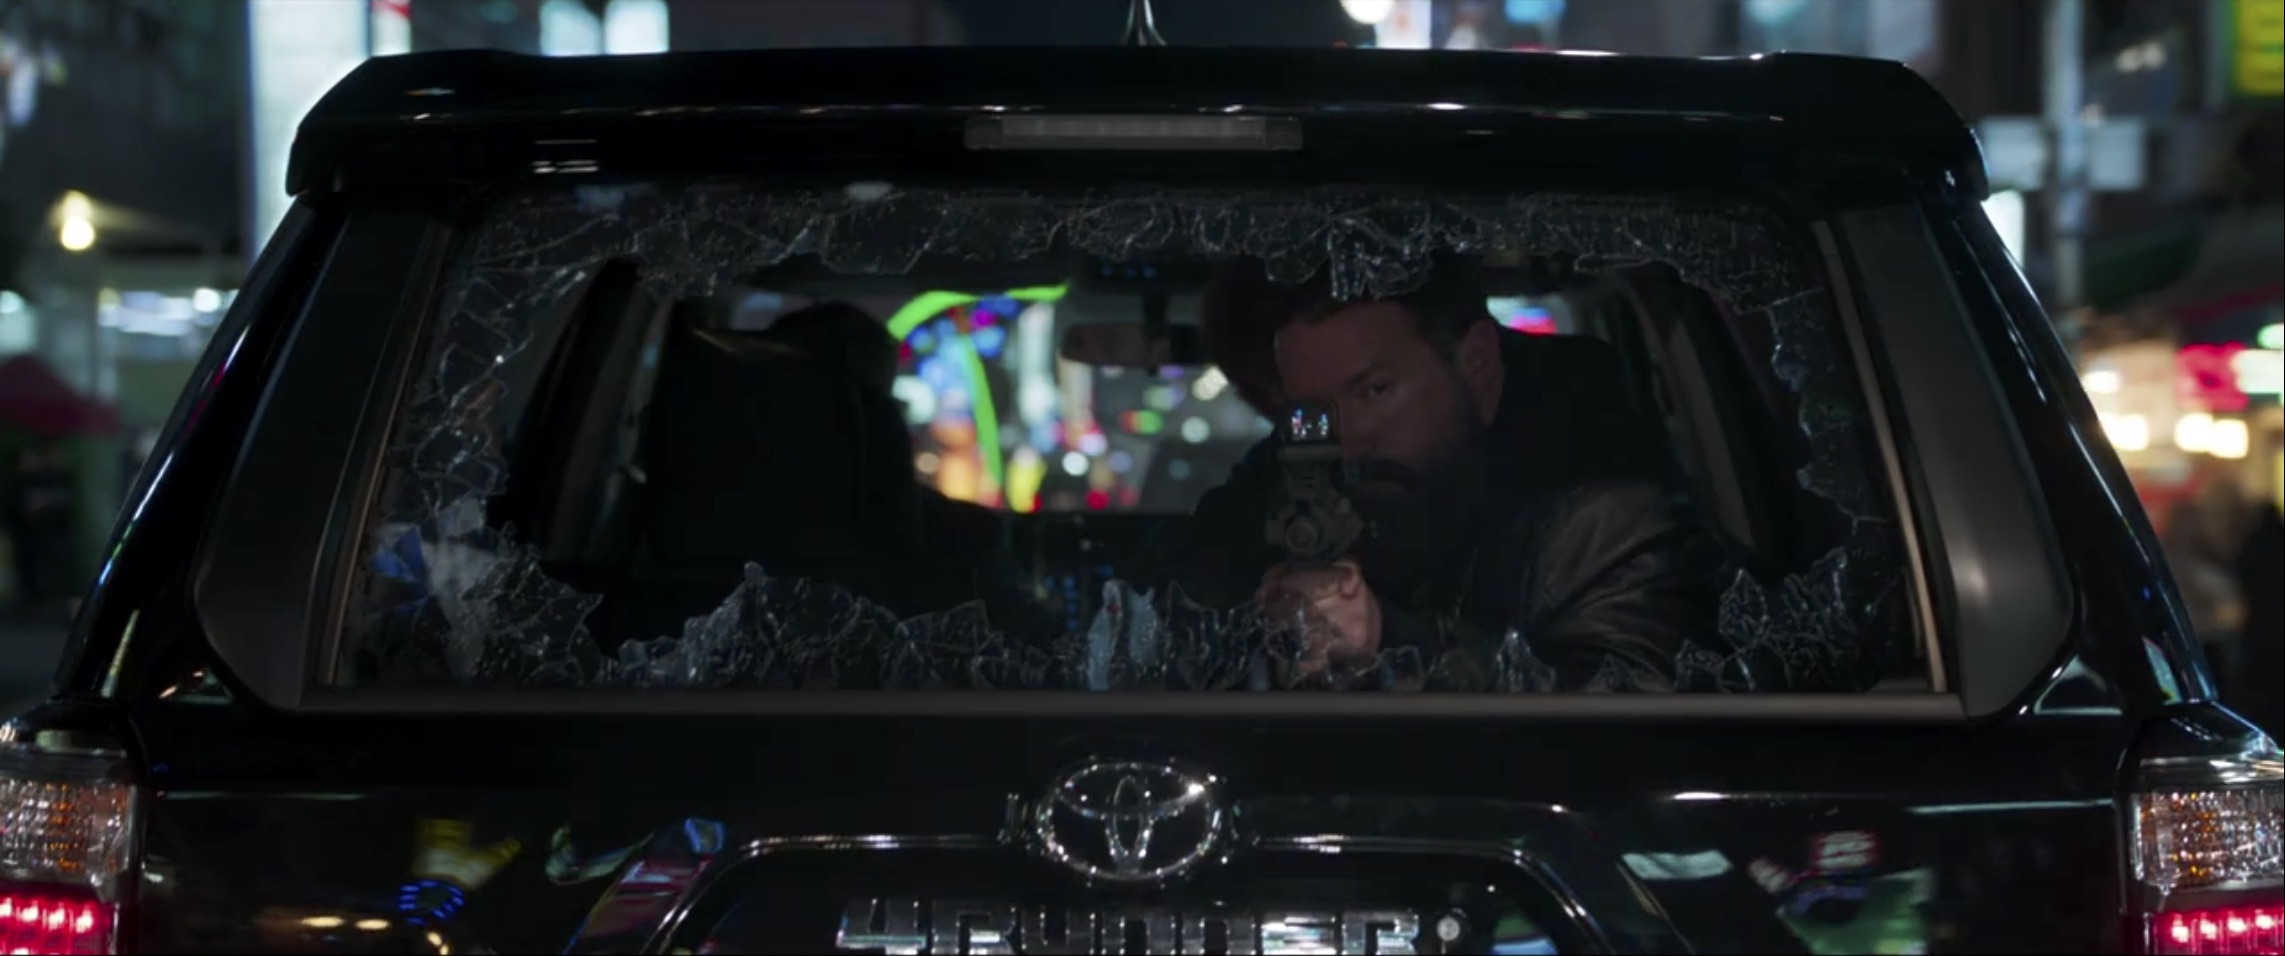 Marvel Black Panther shooting from rear window